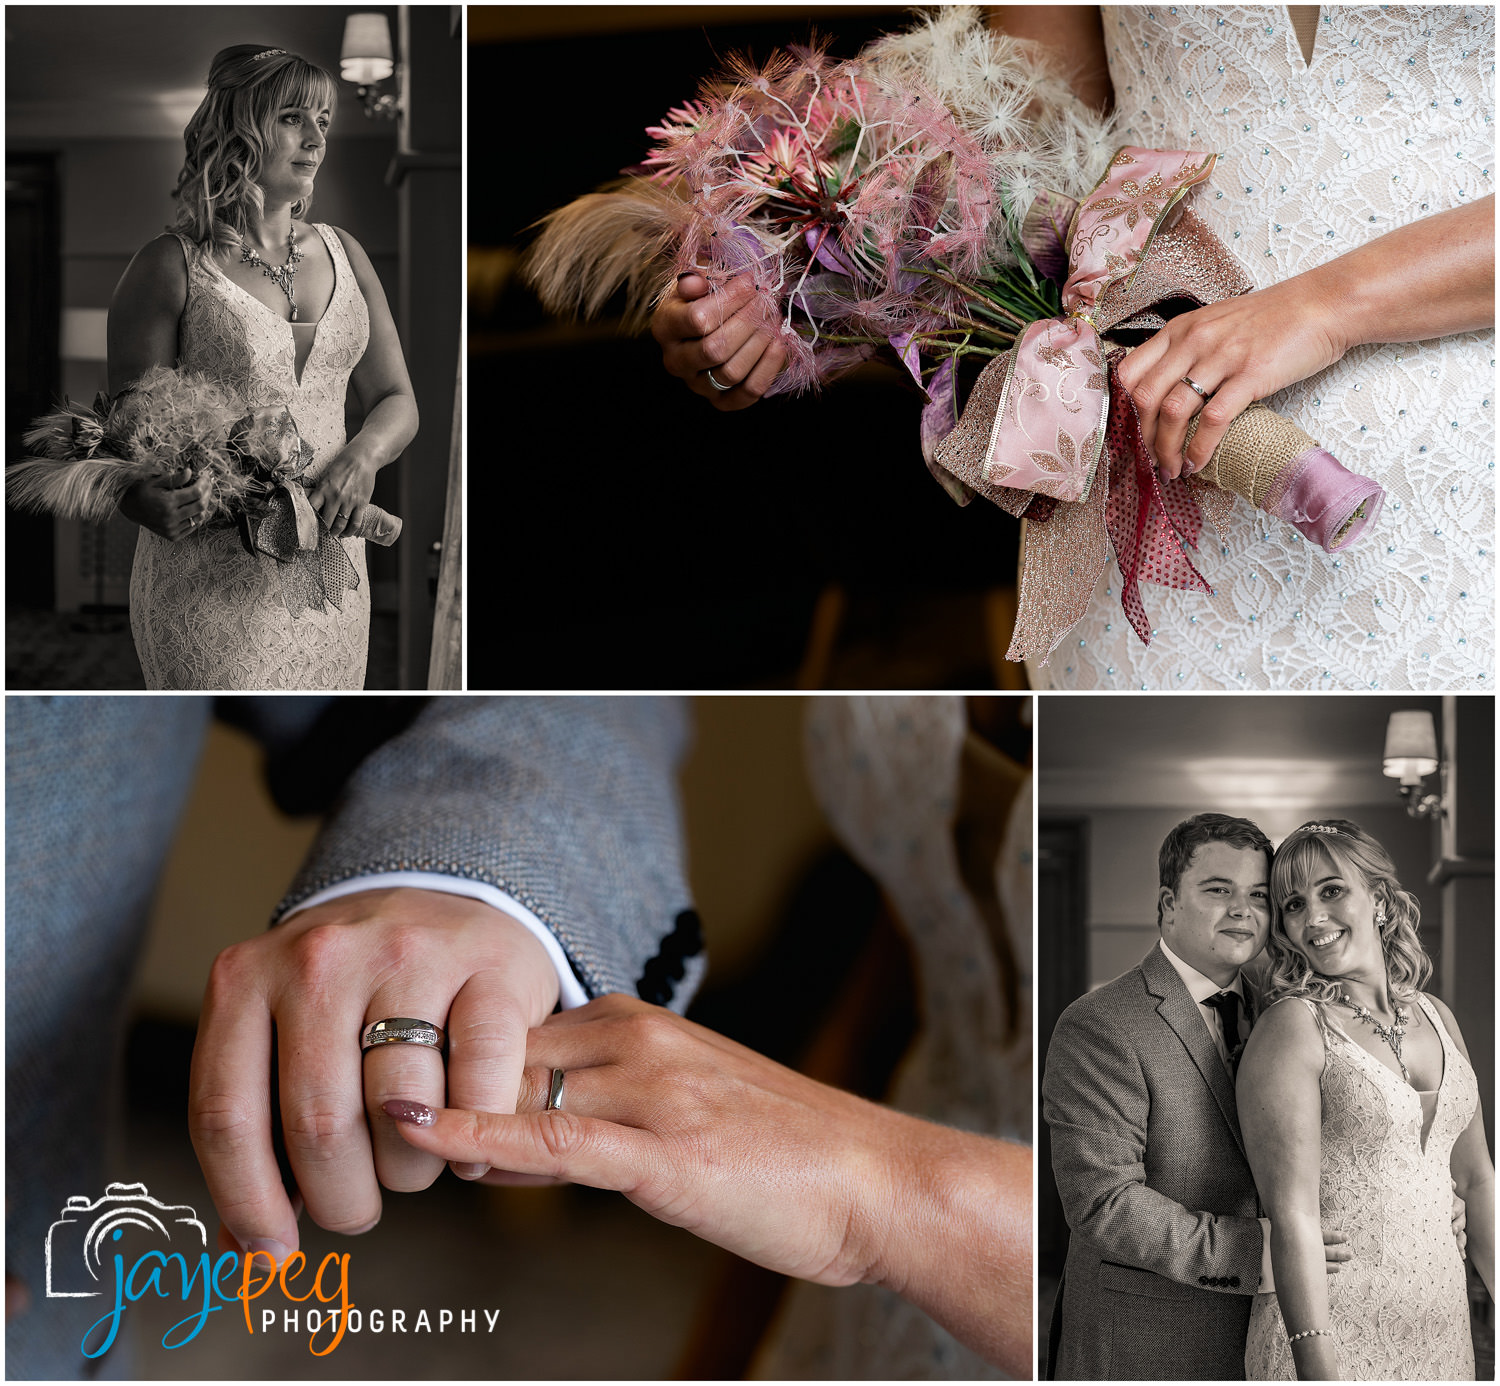 portraits of a bride and groom at their elopement wedding